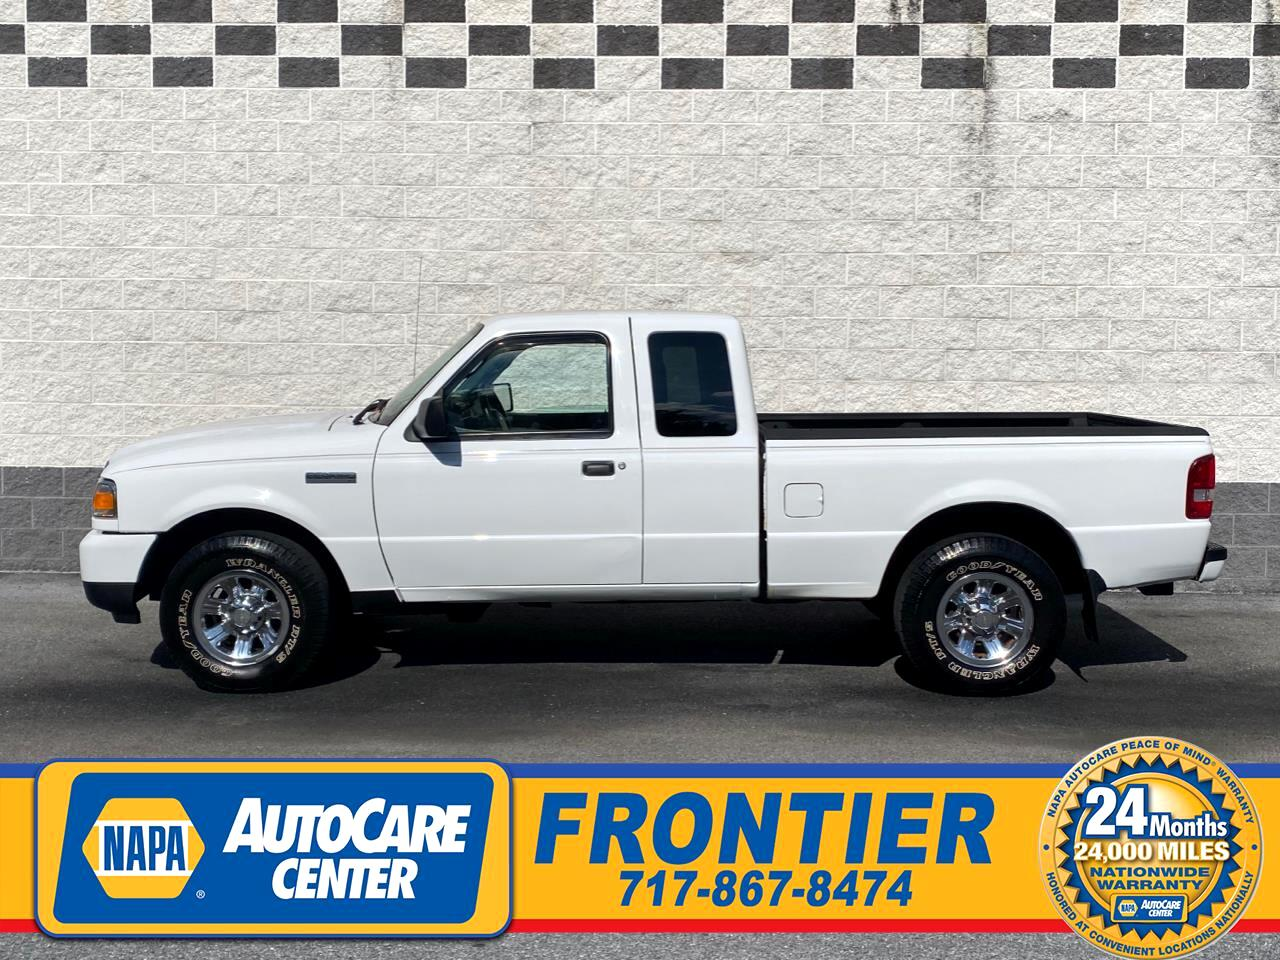 used cars for sale lebanon pa 17042 frontier auto sales lebanon pa 17042 frontier auto sales